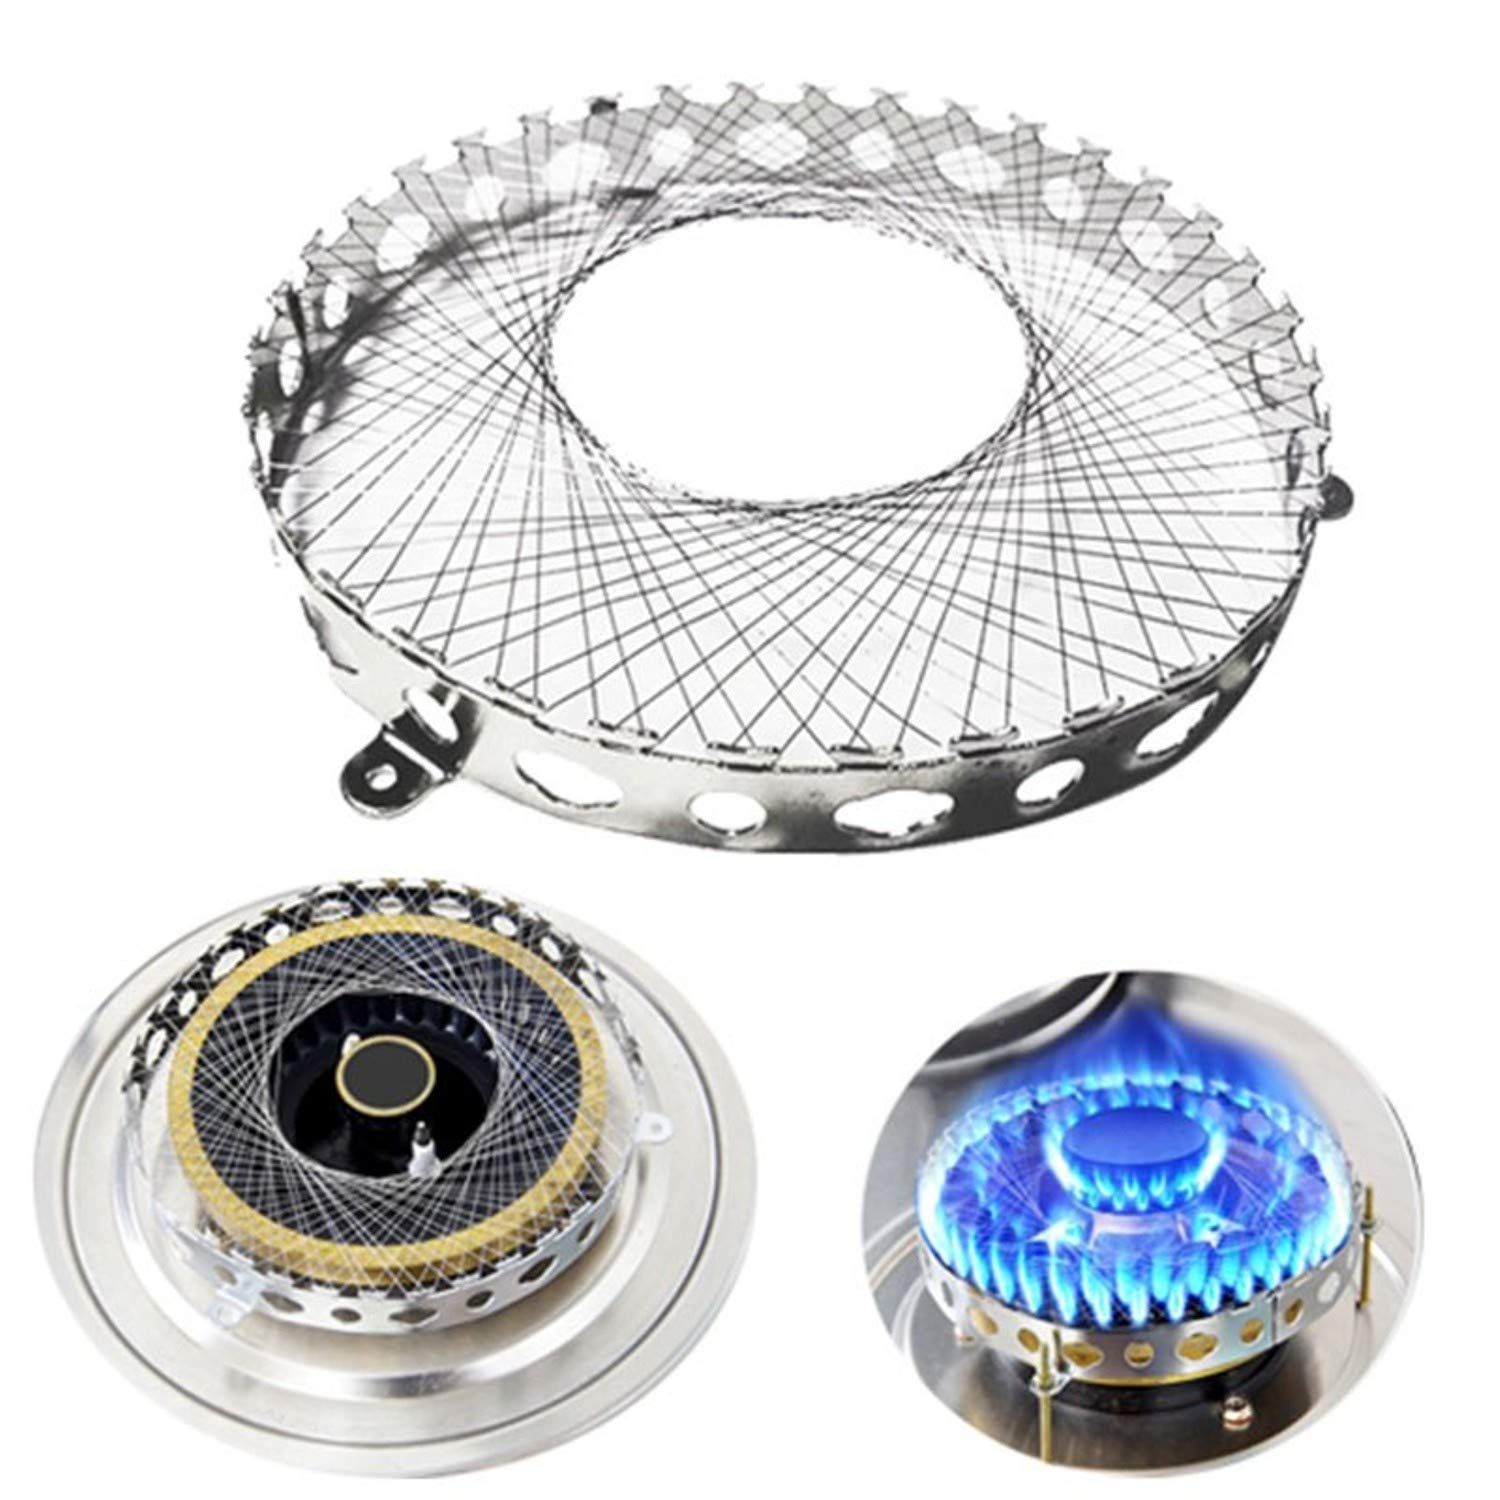 TSG GLOBAL Gas Stove Torch Net Stainless Steel Gas Cooker Windproof Energy Saving Circle Cover Case Mesh Kitchen Accessories 8